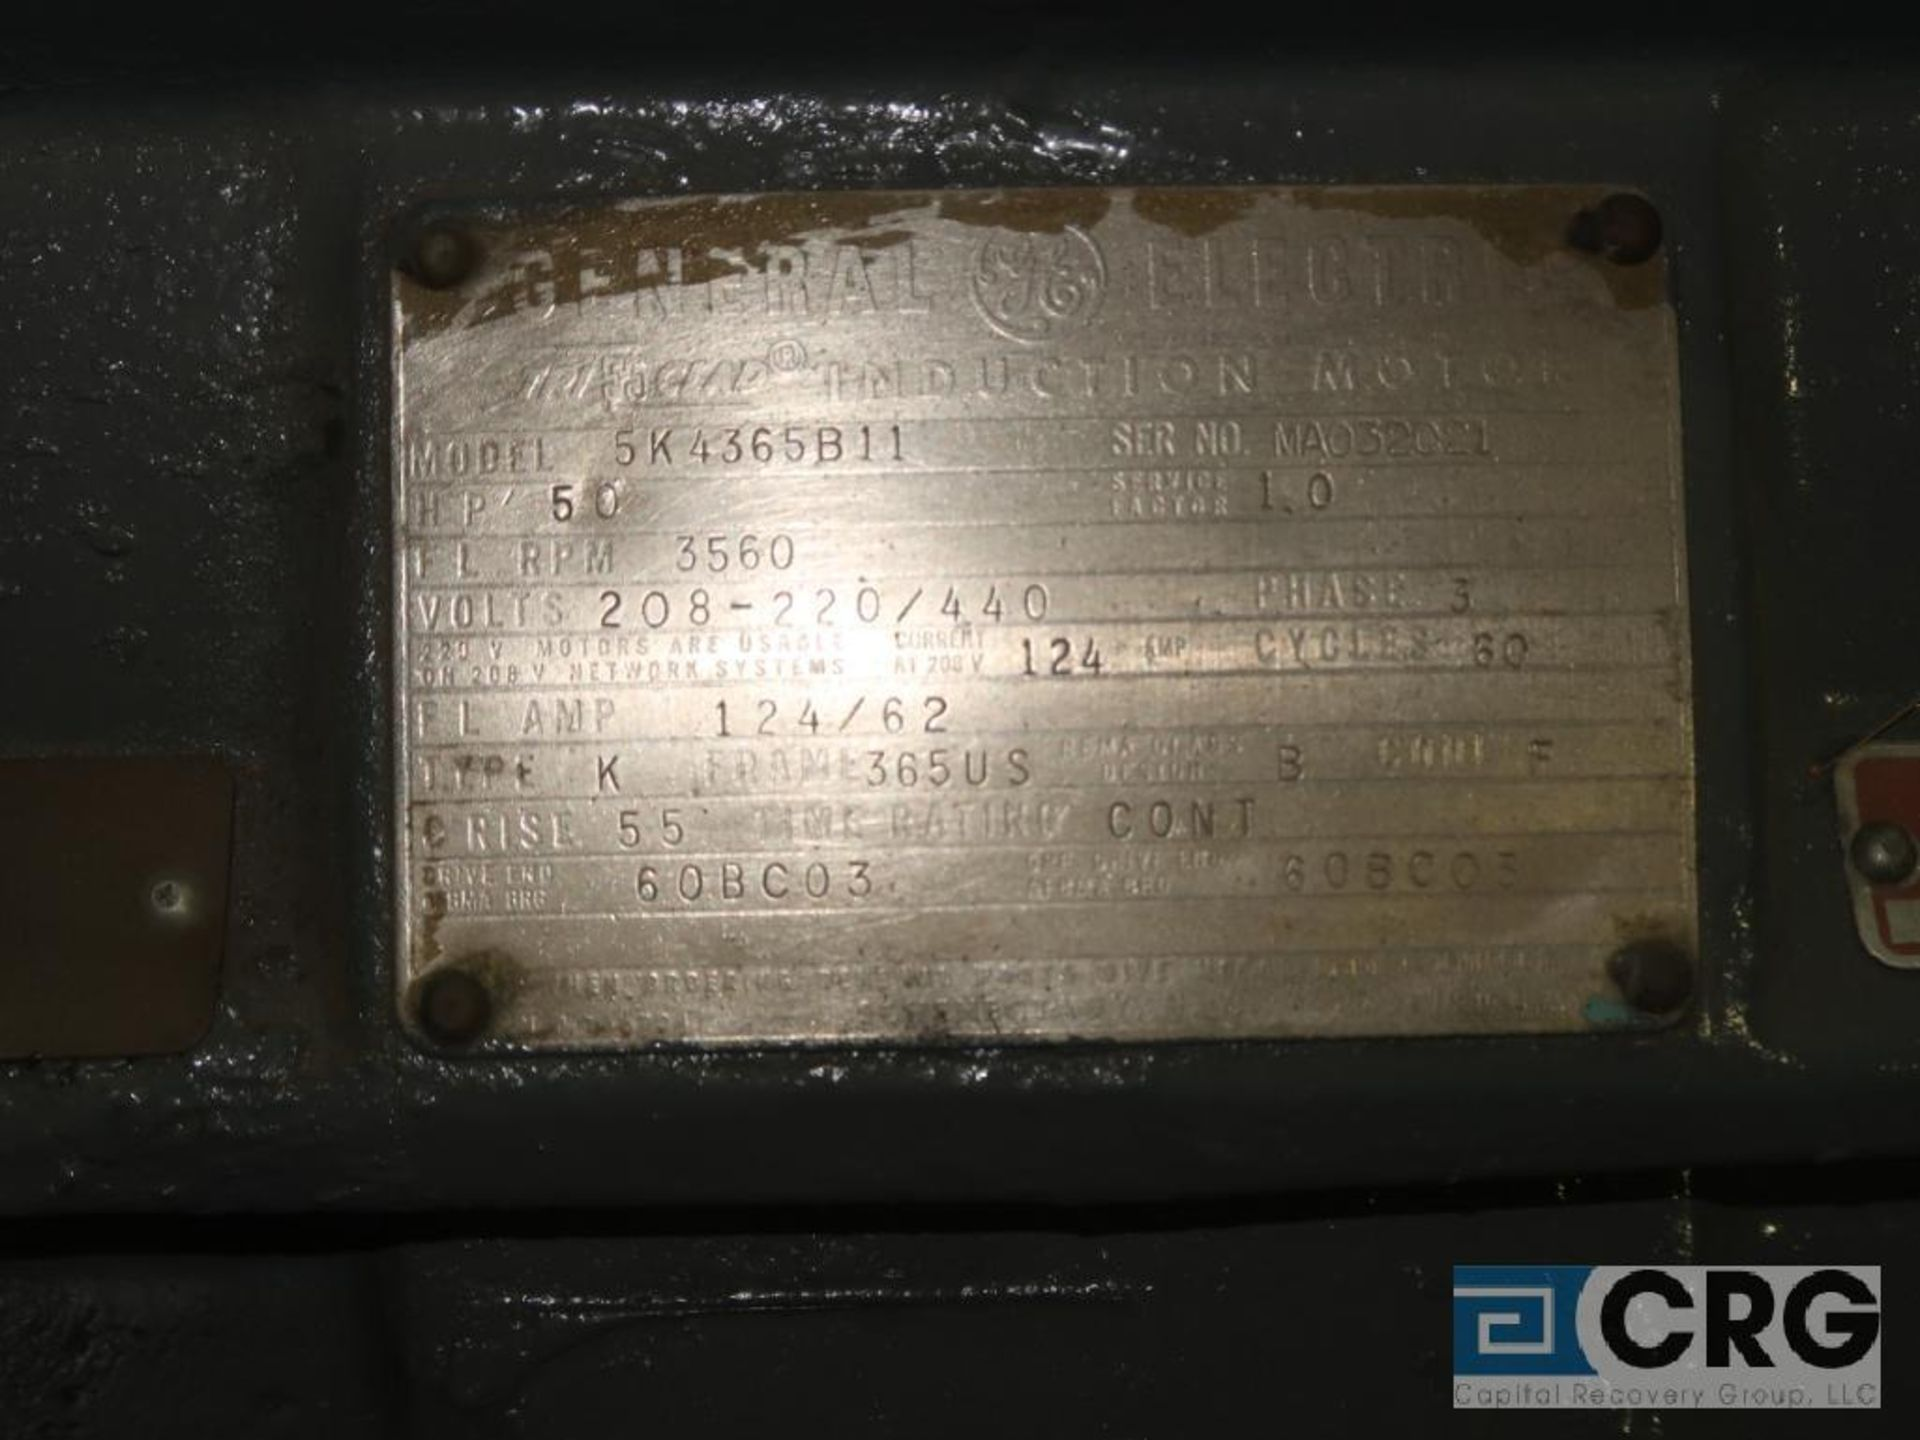 General Electric induction motor, 50 HP, 3,560 RPMs, 208-220/440 volt, 3 ph., 365US frame (Finish - Image 2 of 2